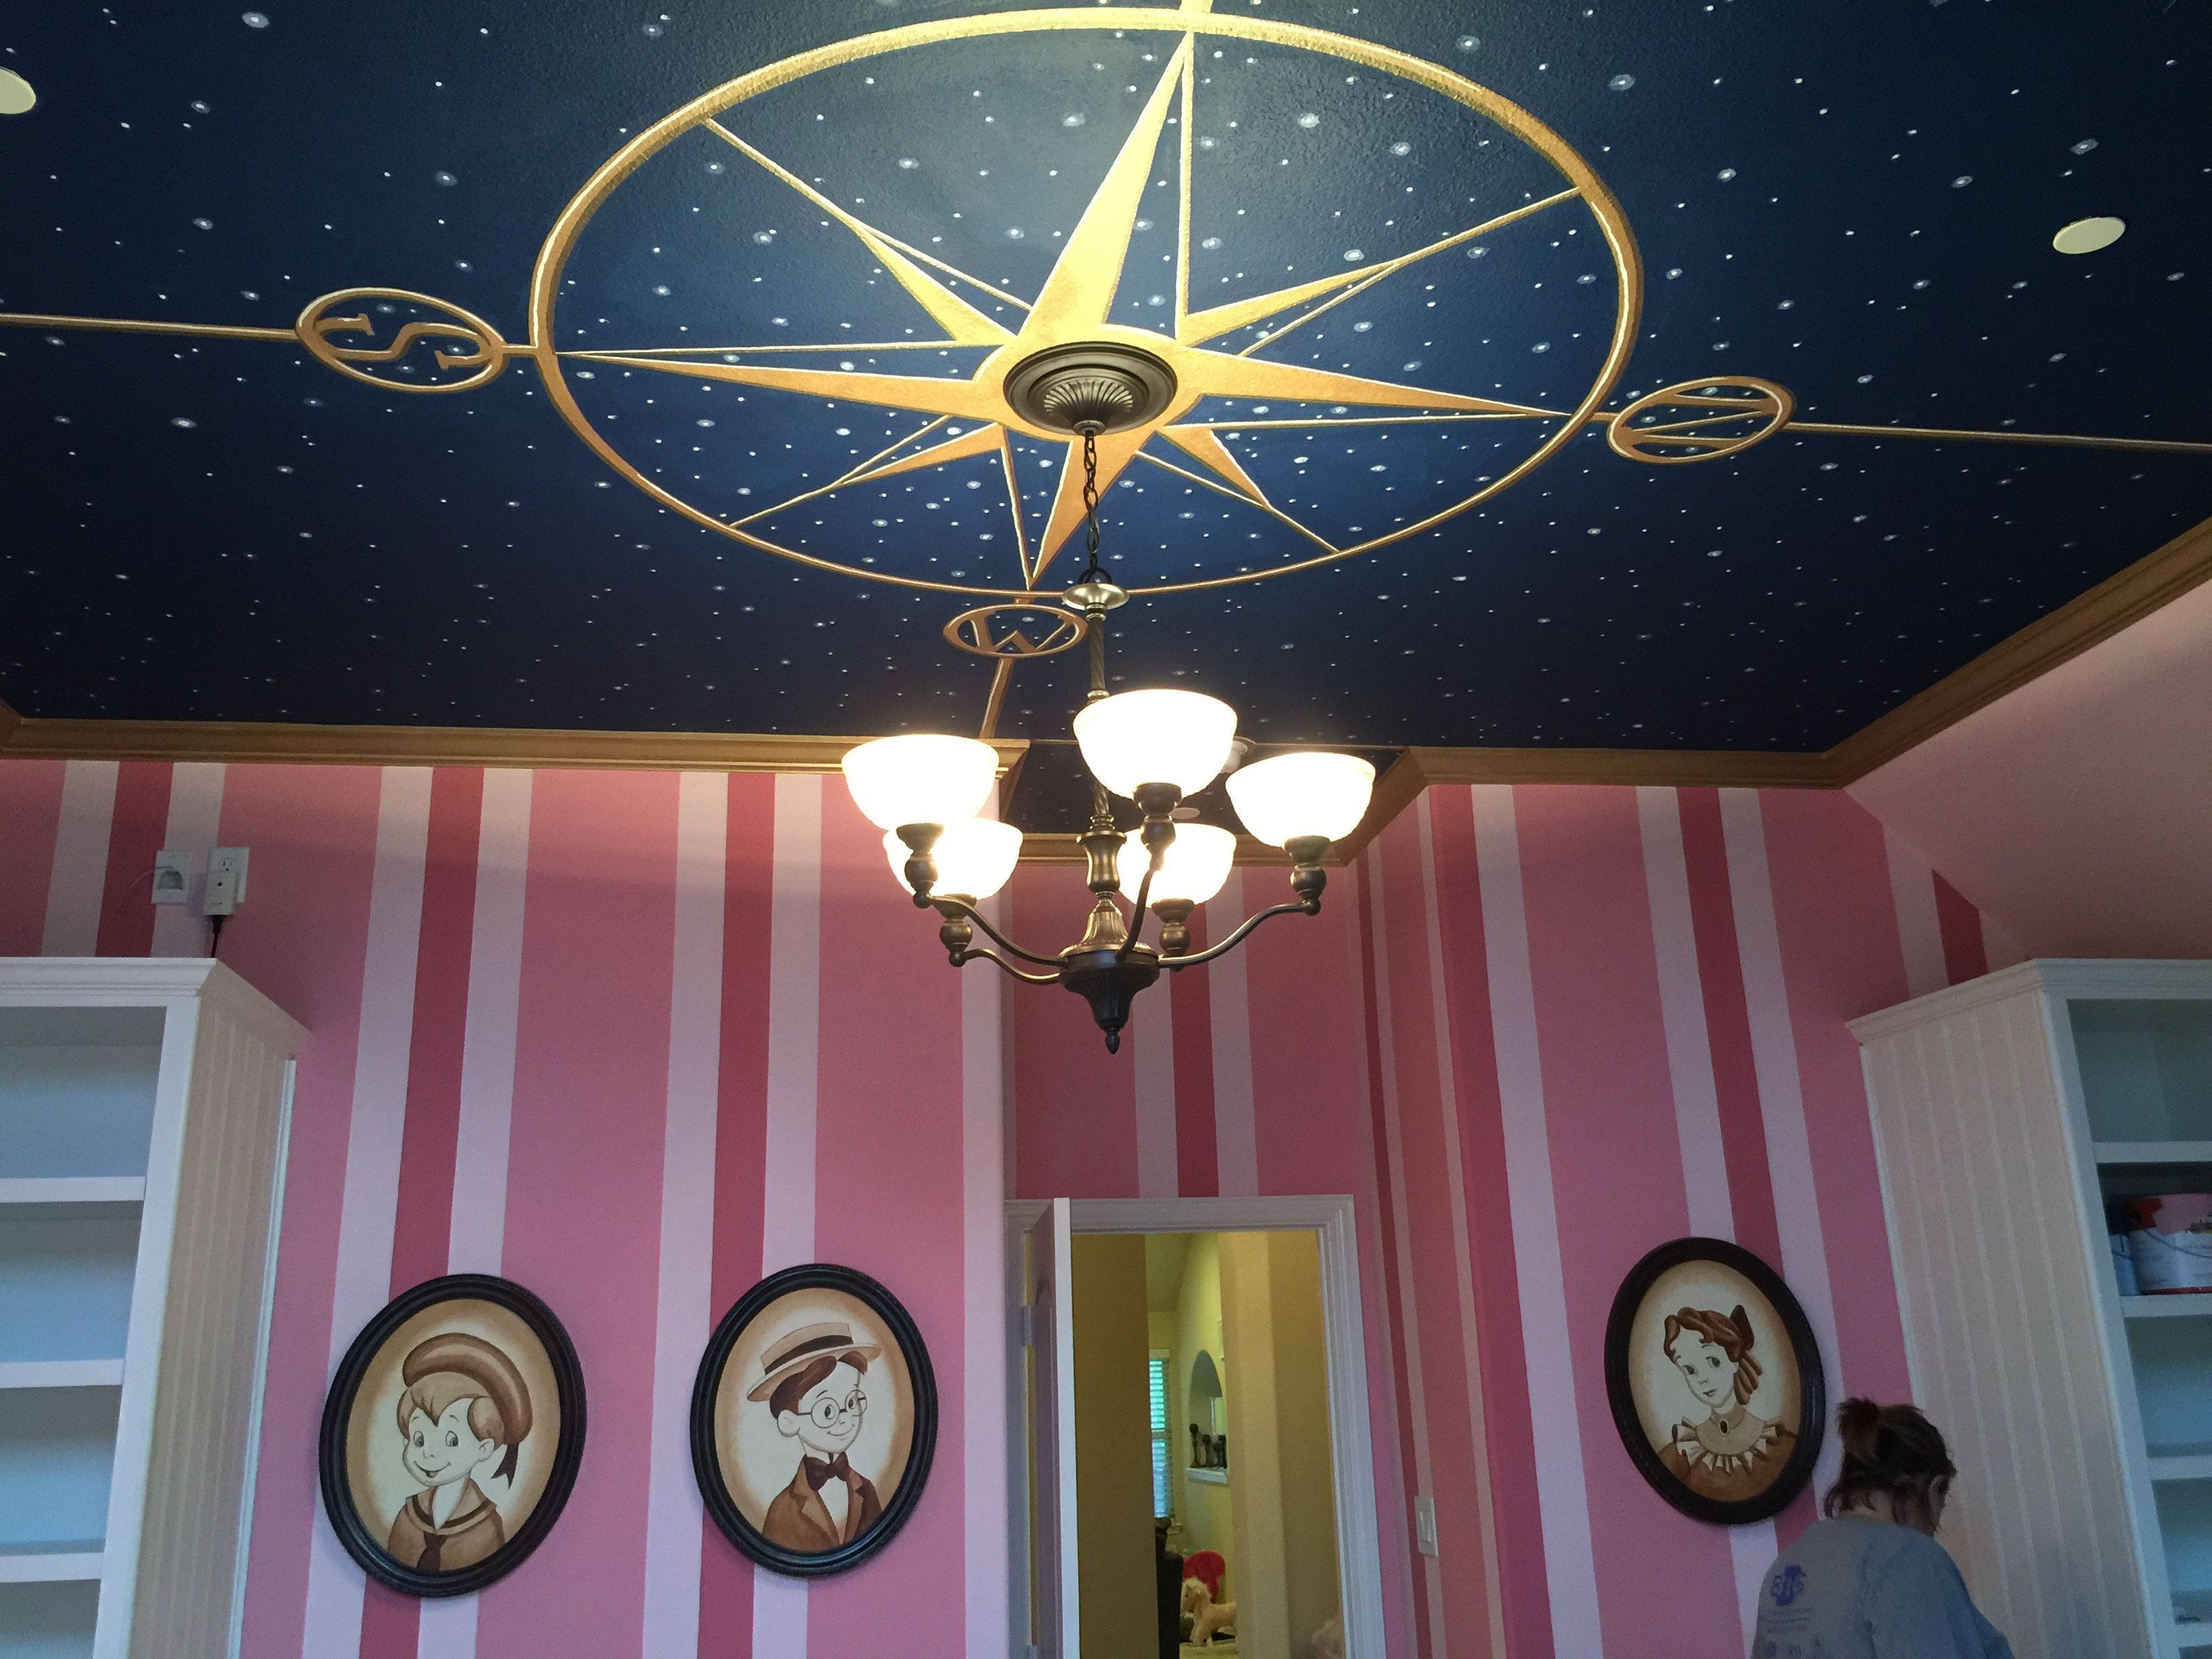 Peter Pan Nursery Playroom Mural Ceiling #gypsysetup